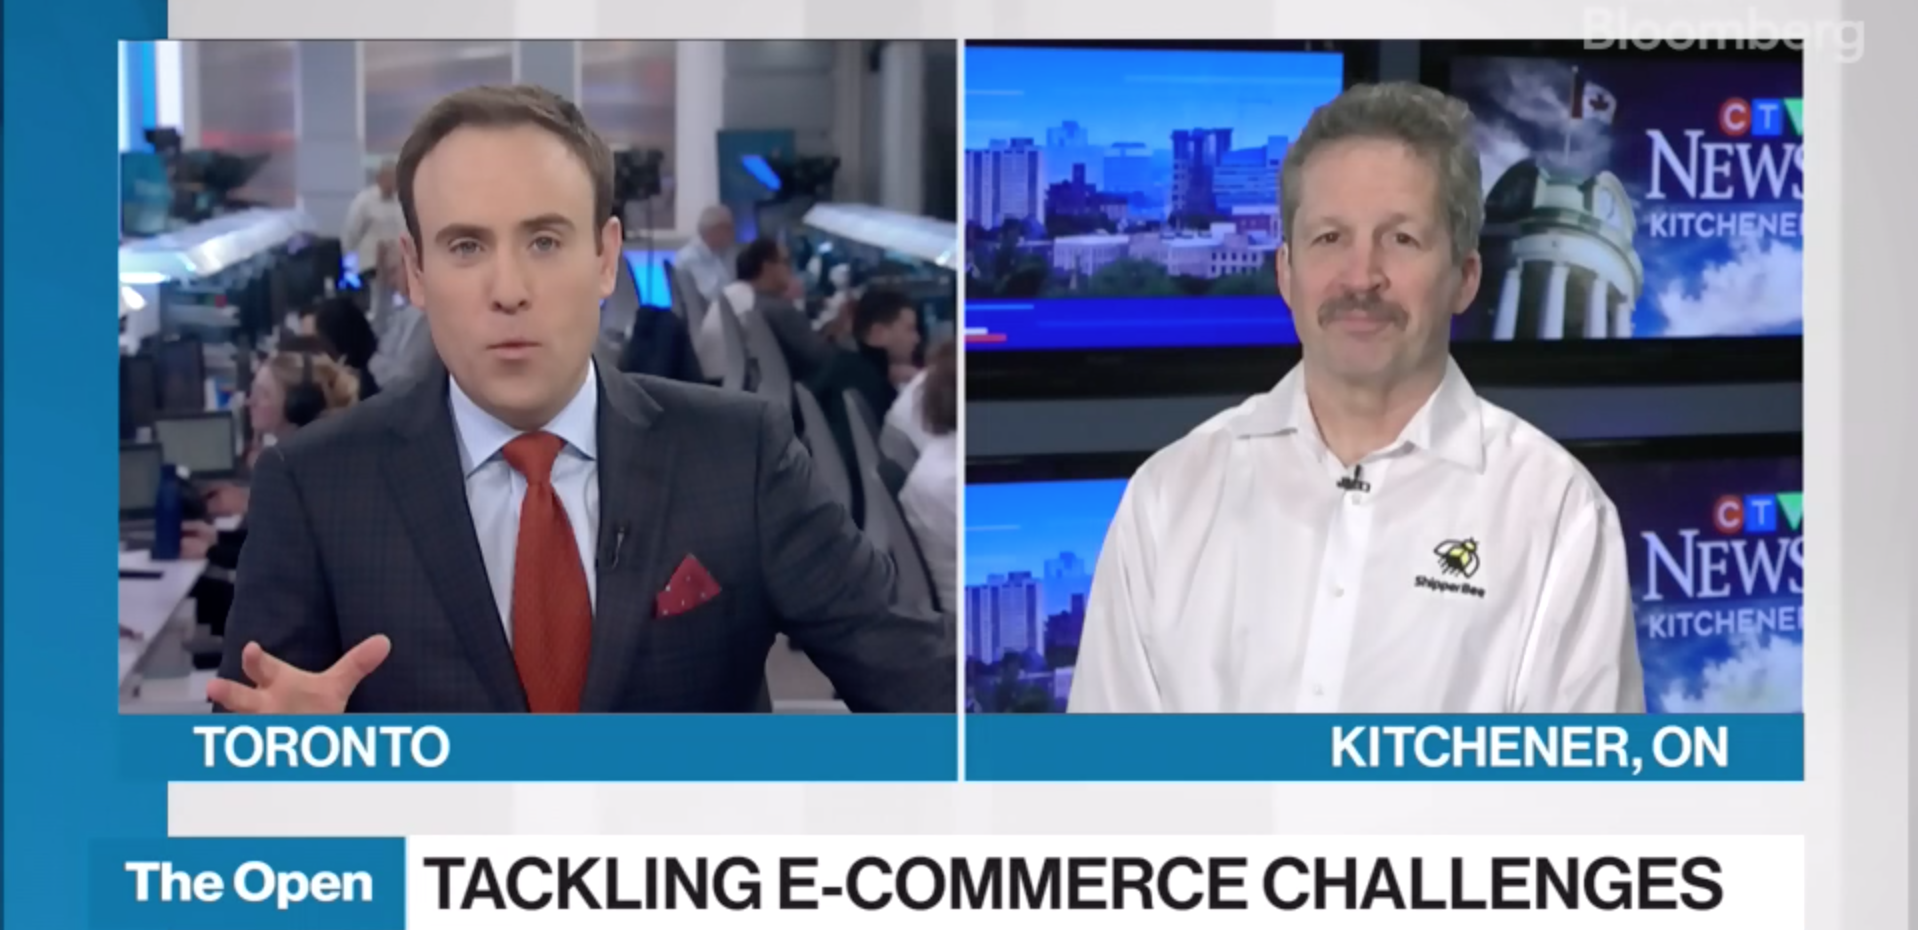 Jim Estill, Founder & CEO, ShipperBee, discusses how he's working to tackle e-commerce issues.